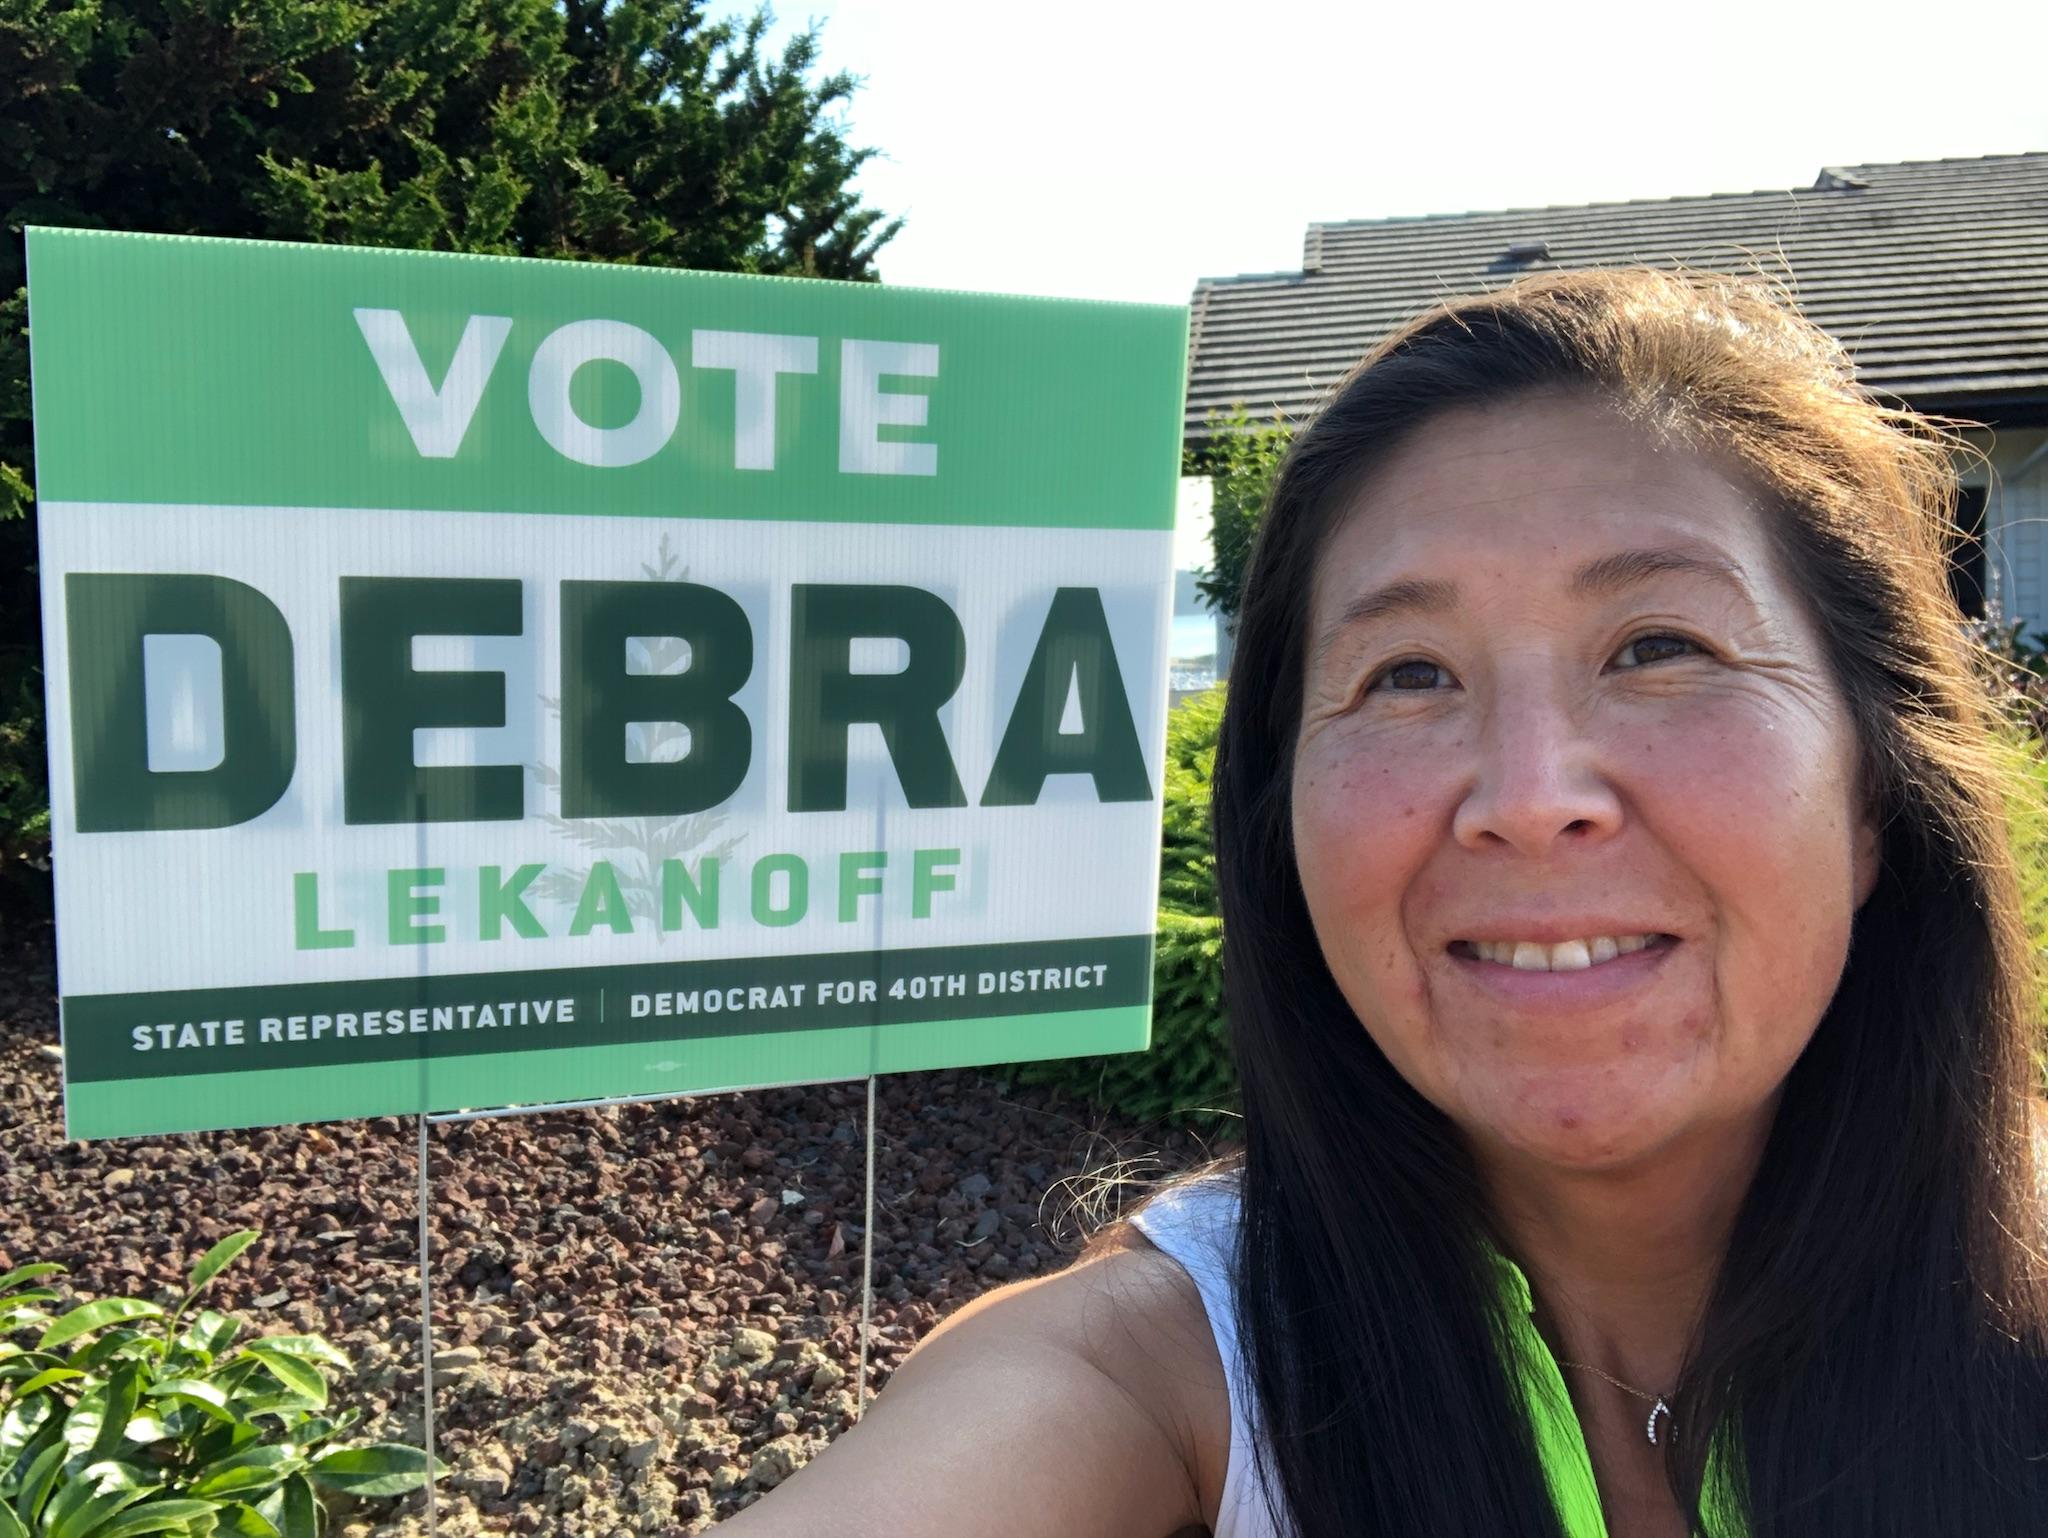 Get a Vote DebraLekanoff Yard Sign! -  Fill out the form below and one of our    volunteers will be in touch.